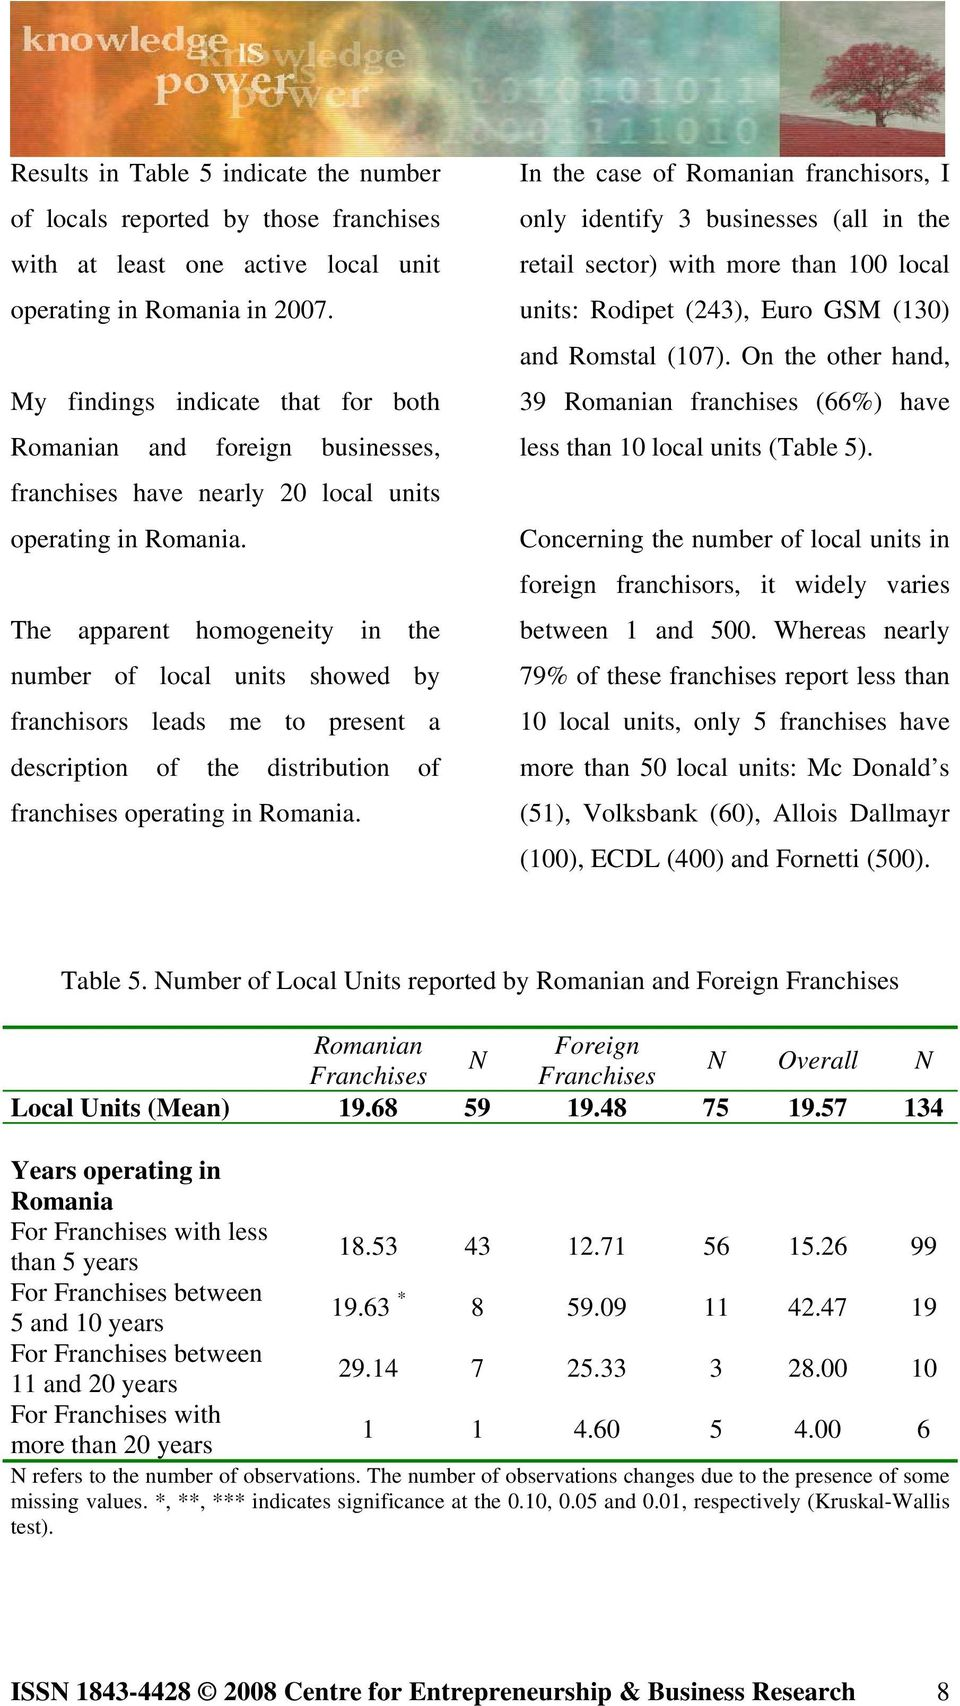 The apparent homogeneity in the number of local units showed by franchisors leads me to present a description of the distribution of franchises operating in Romania.